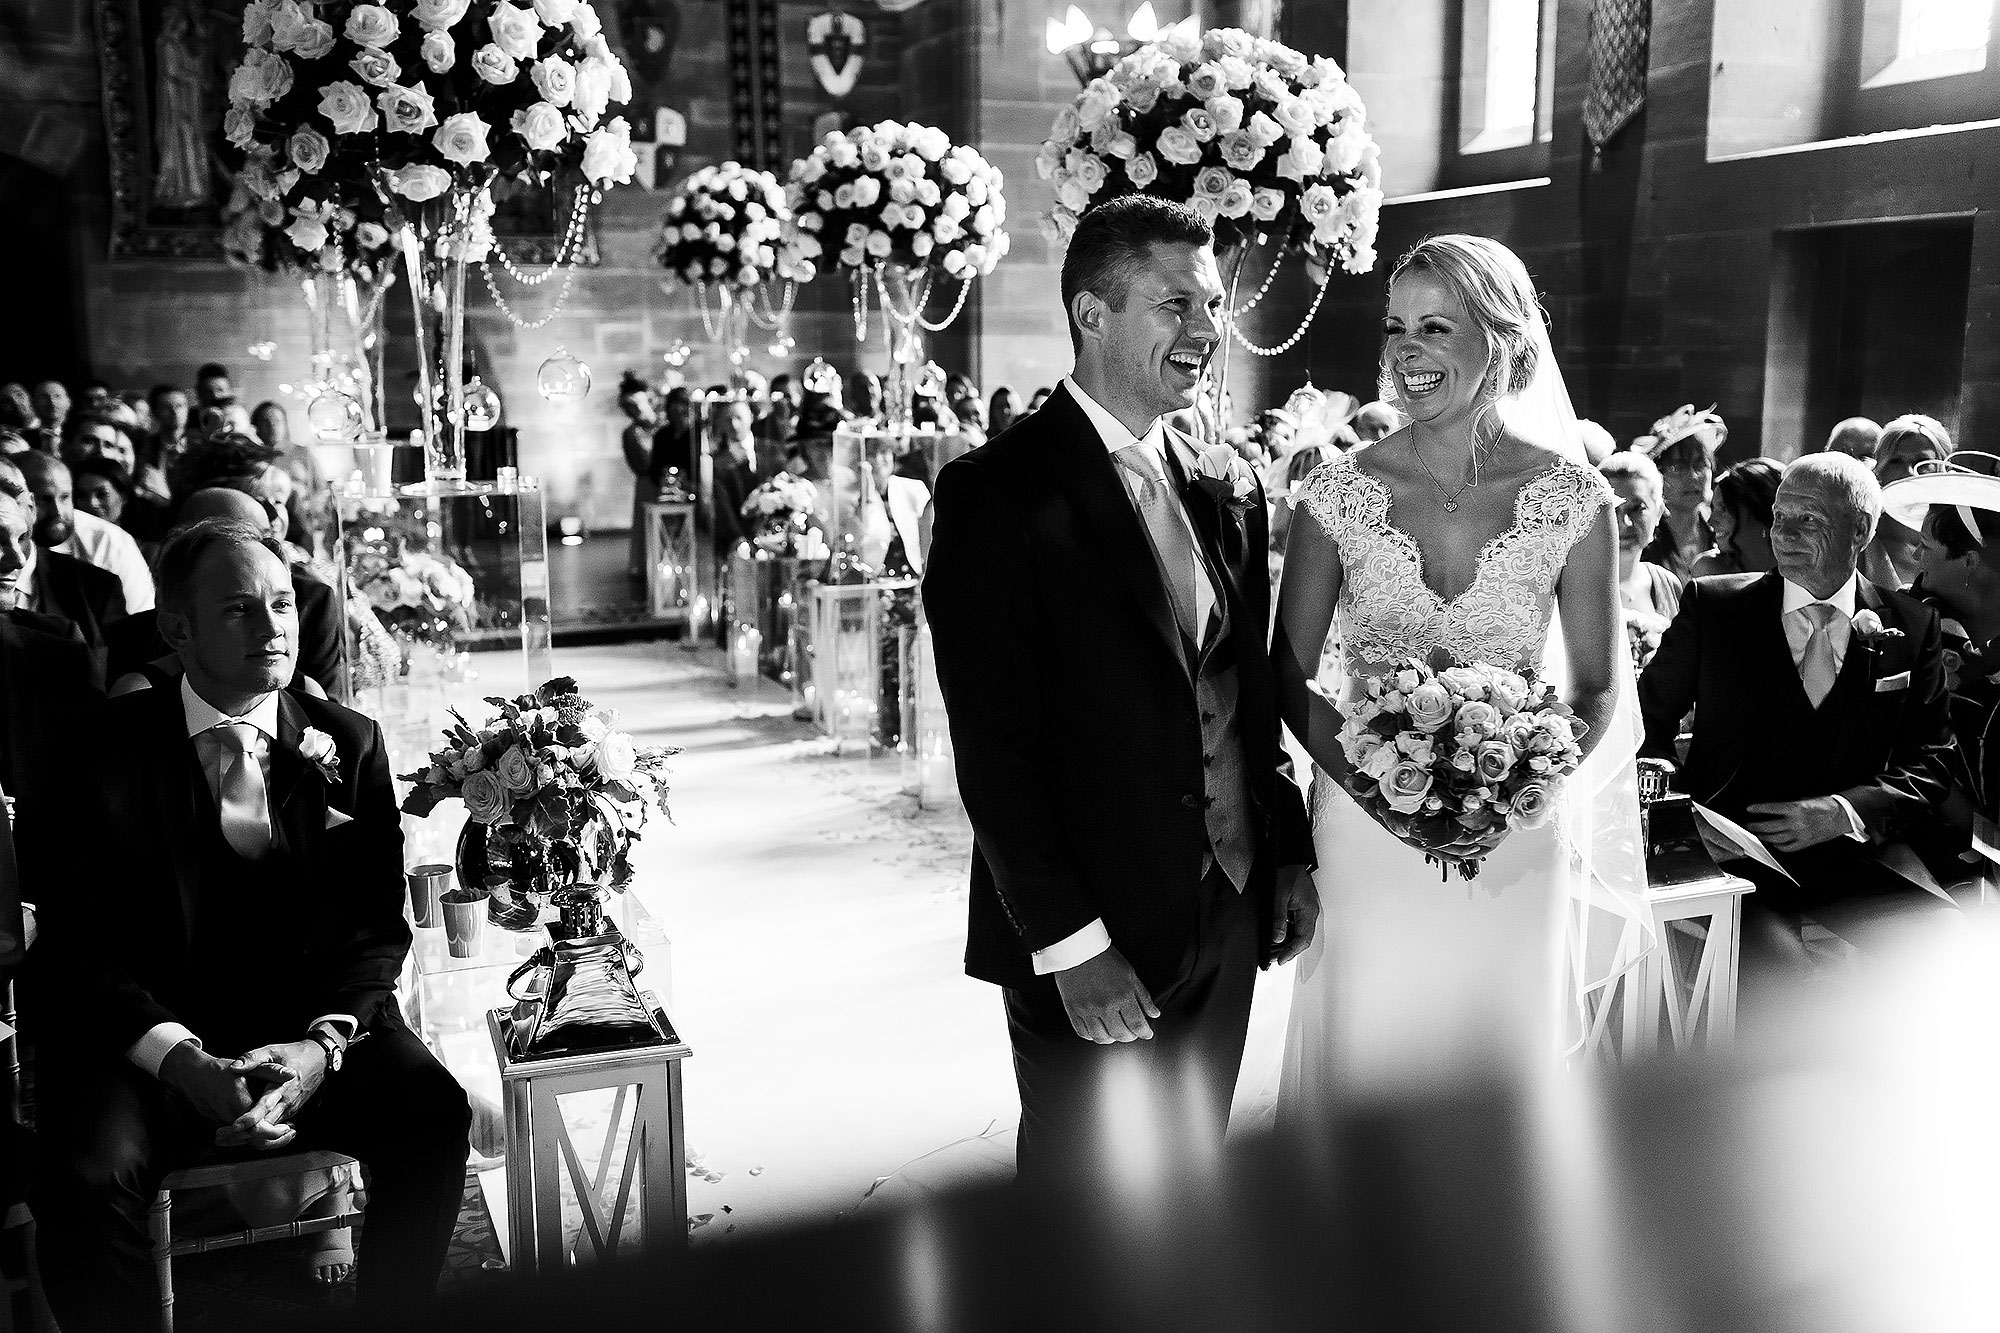 Bride with blonde hair and low bun wearing v neck lace wedding dress smily at the groom as she reaches the top of the wedding aisle | Peckforton Castle Wedding by Toni Darcy Photography